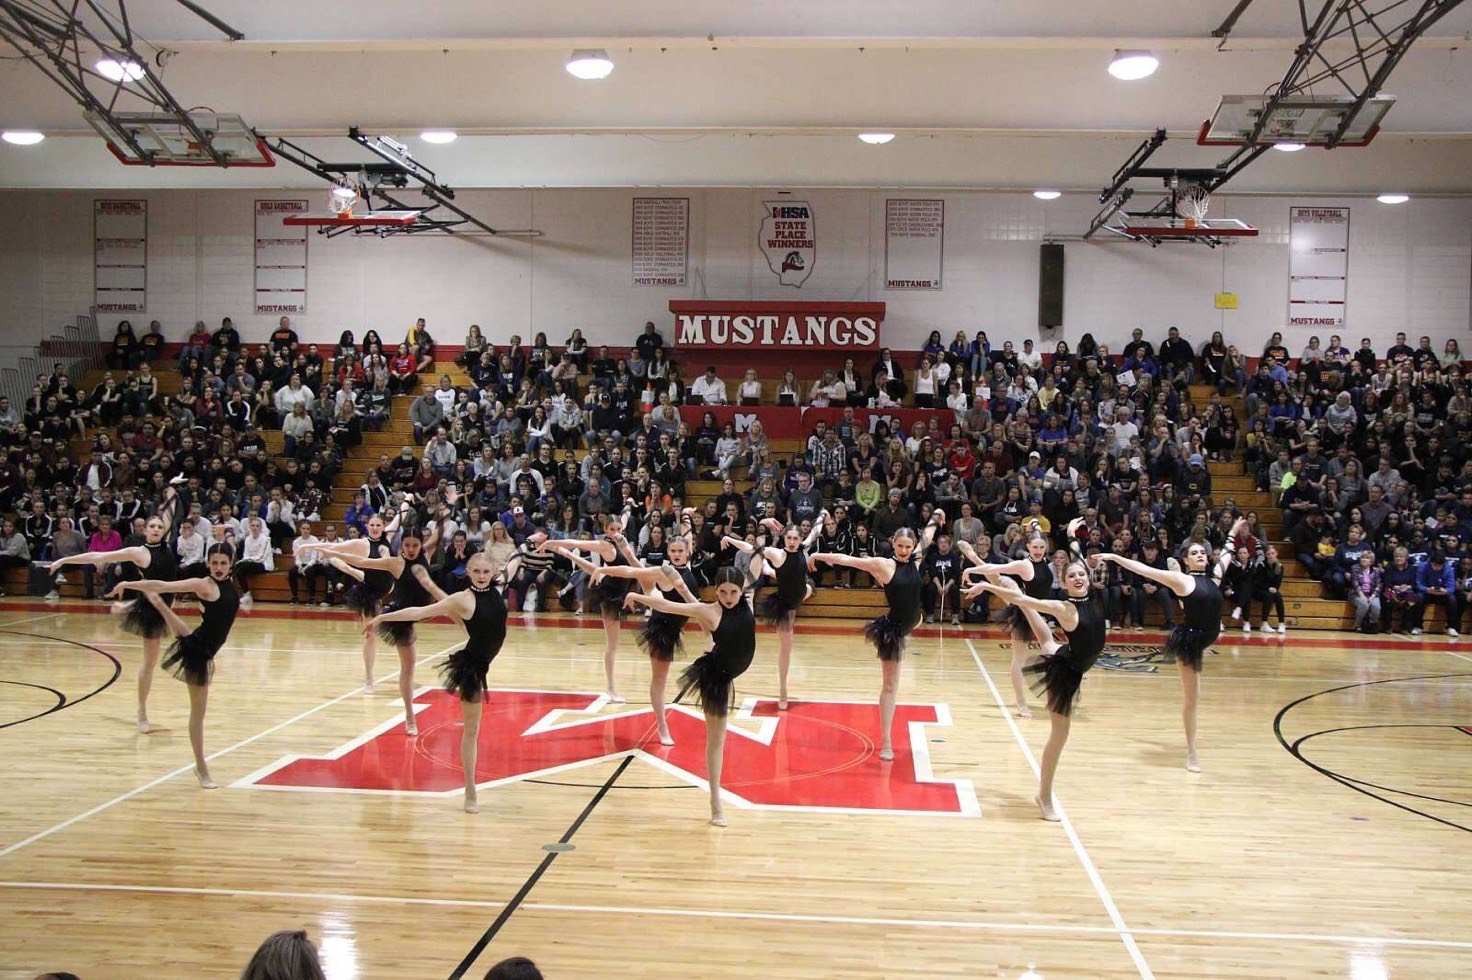 """Mundelein's varsity dance team got seventh place at the """"We Came to Dance"""" invitational hosted at MHS on Nov. 24, for its dance to """"Hold Back the River"""" covered by Blaine Mitchell."""